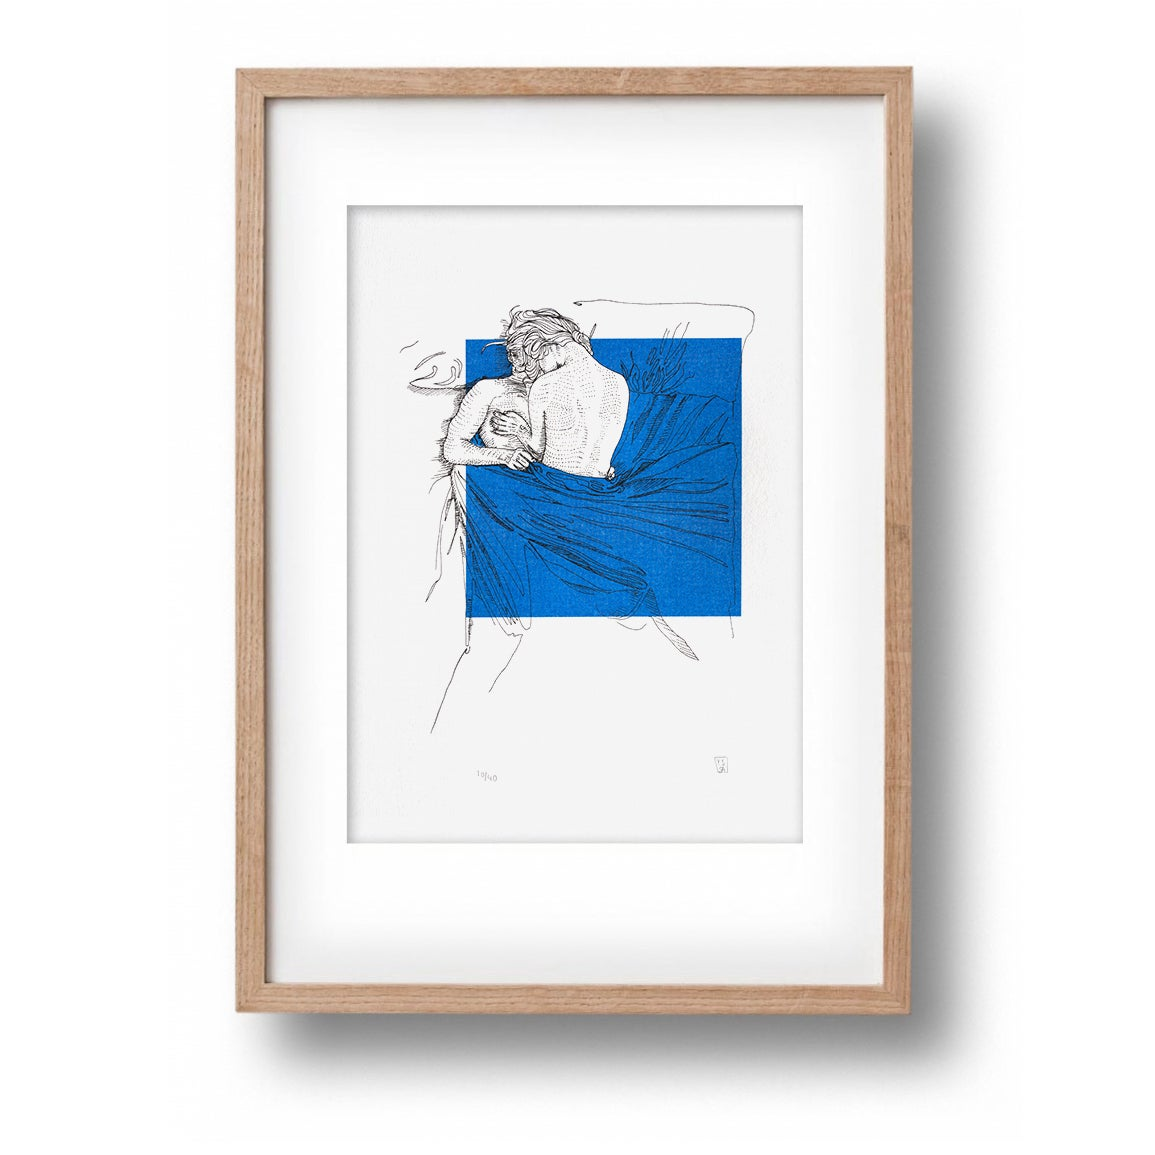 Image of #74 Between The Lines Print